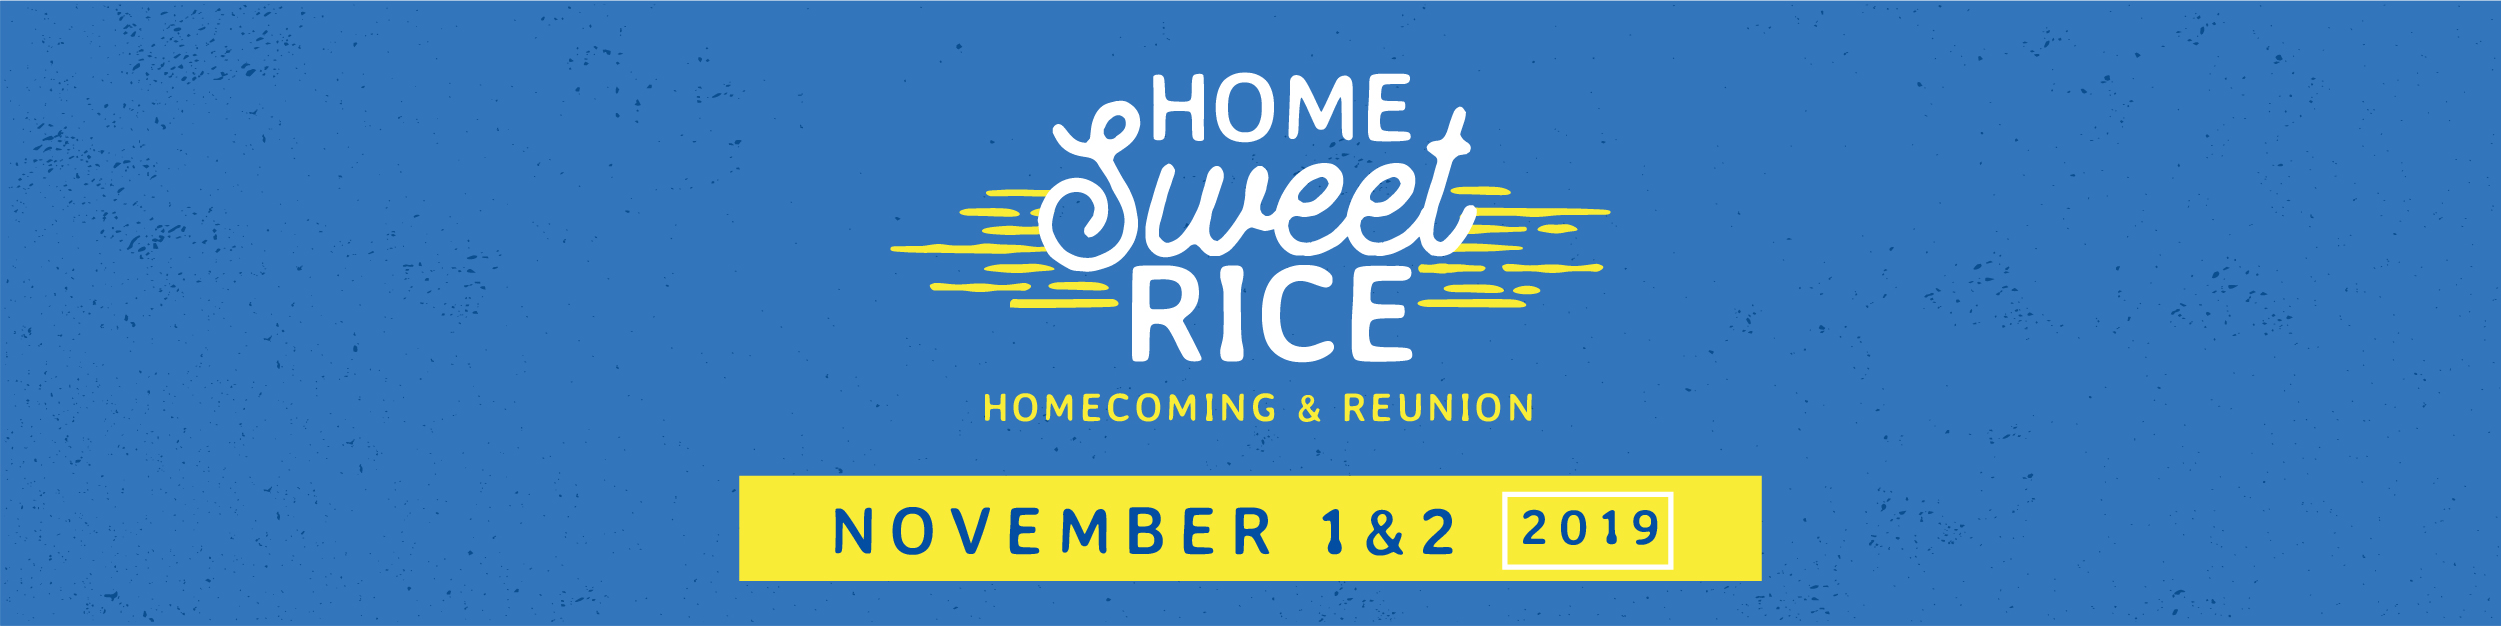 Home Sweet Rice